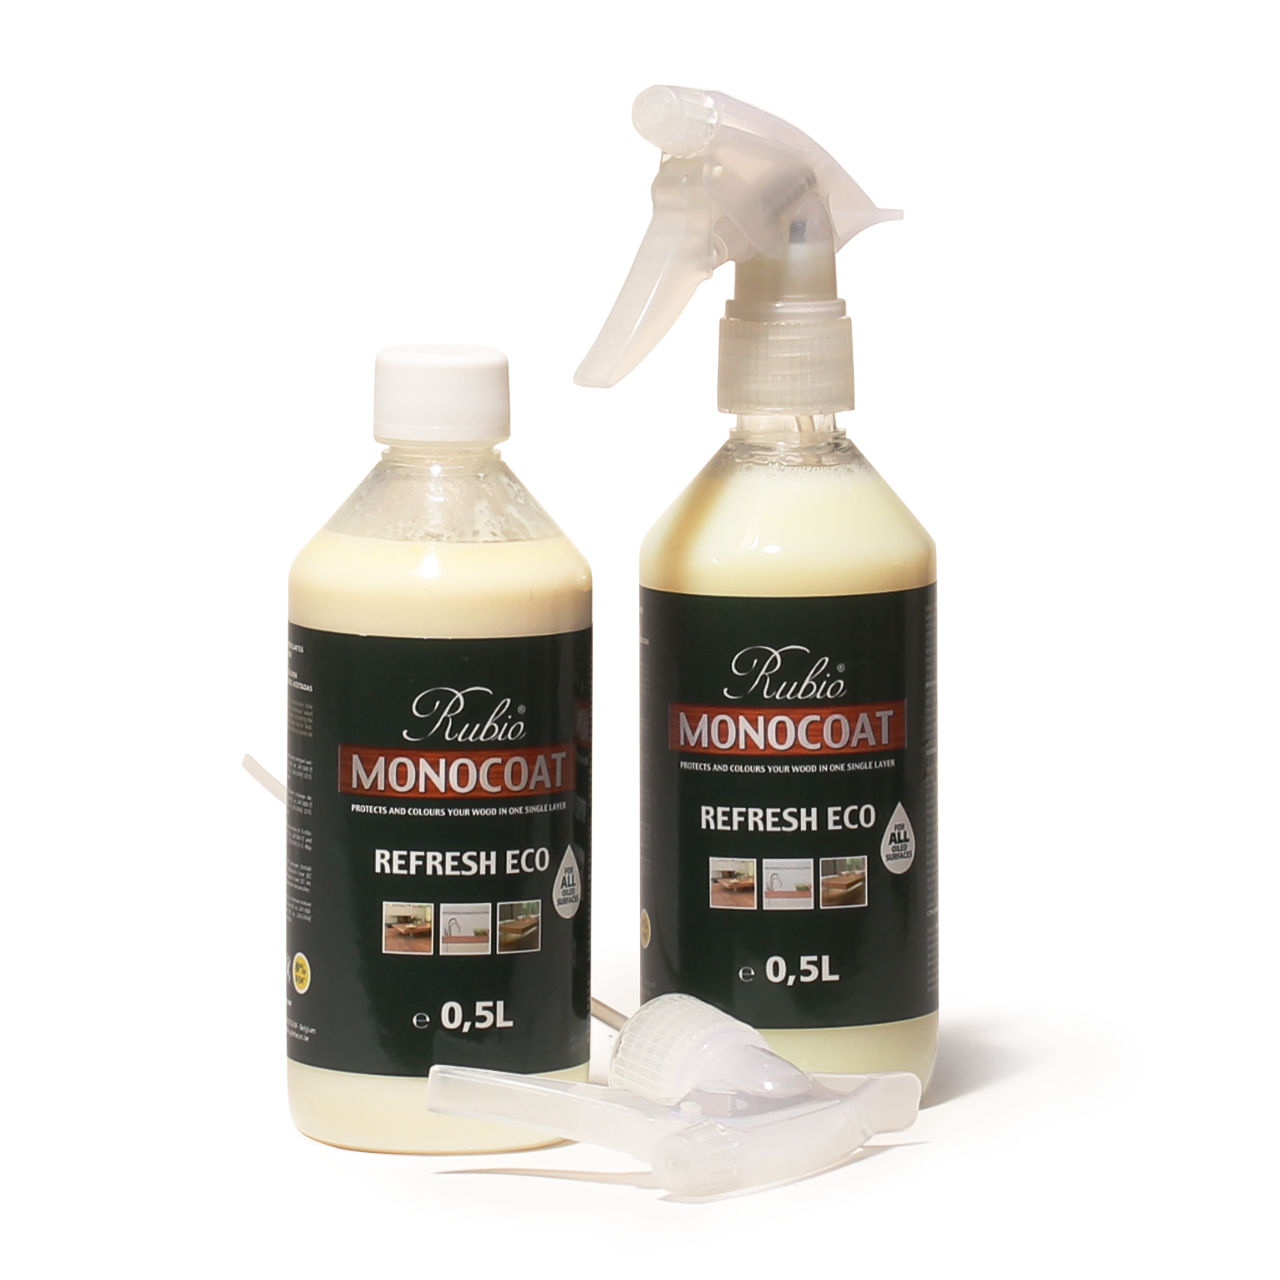 refresh eco spray 500 ml pflege holz im innenbereich reinigen und pflegen rubio monocoat. Black Bedroom Furniture Sets. Home Design Ideas